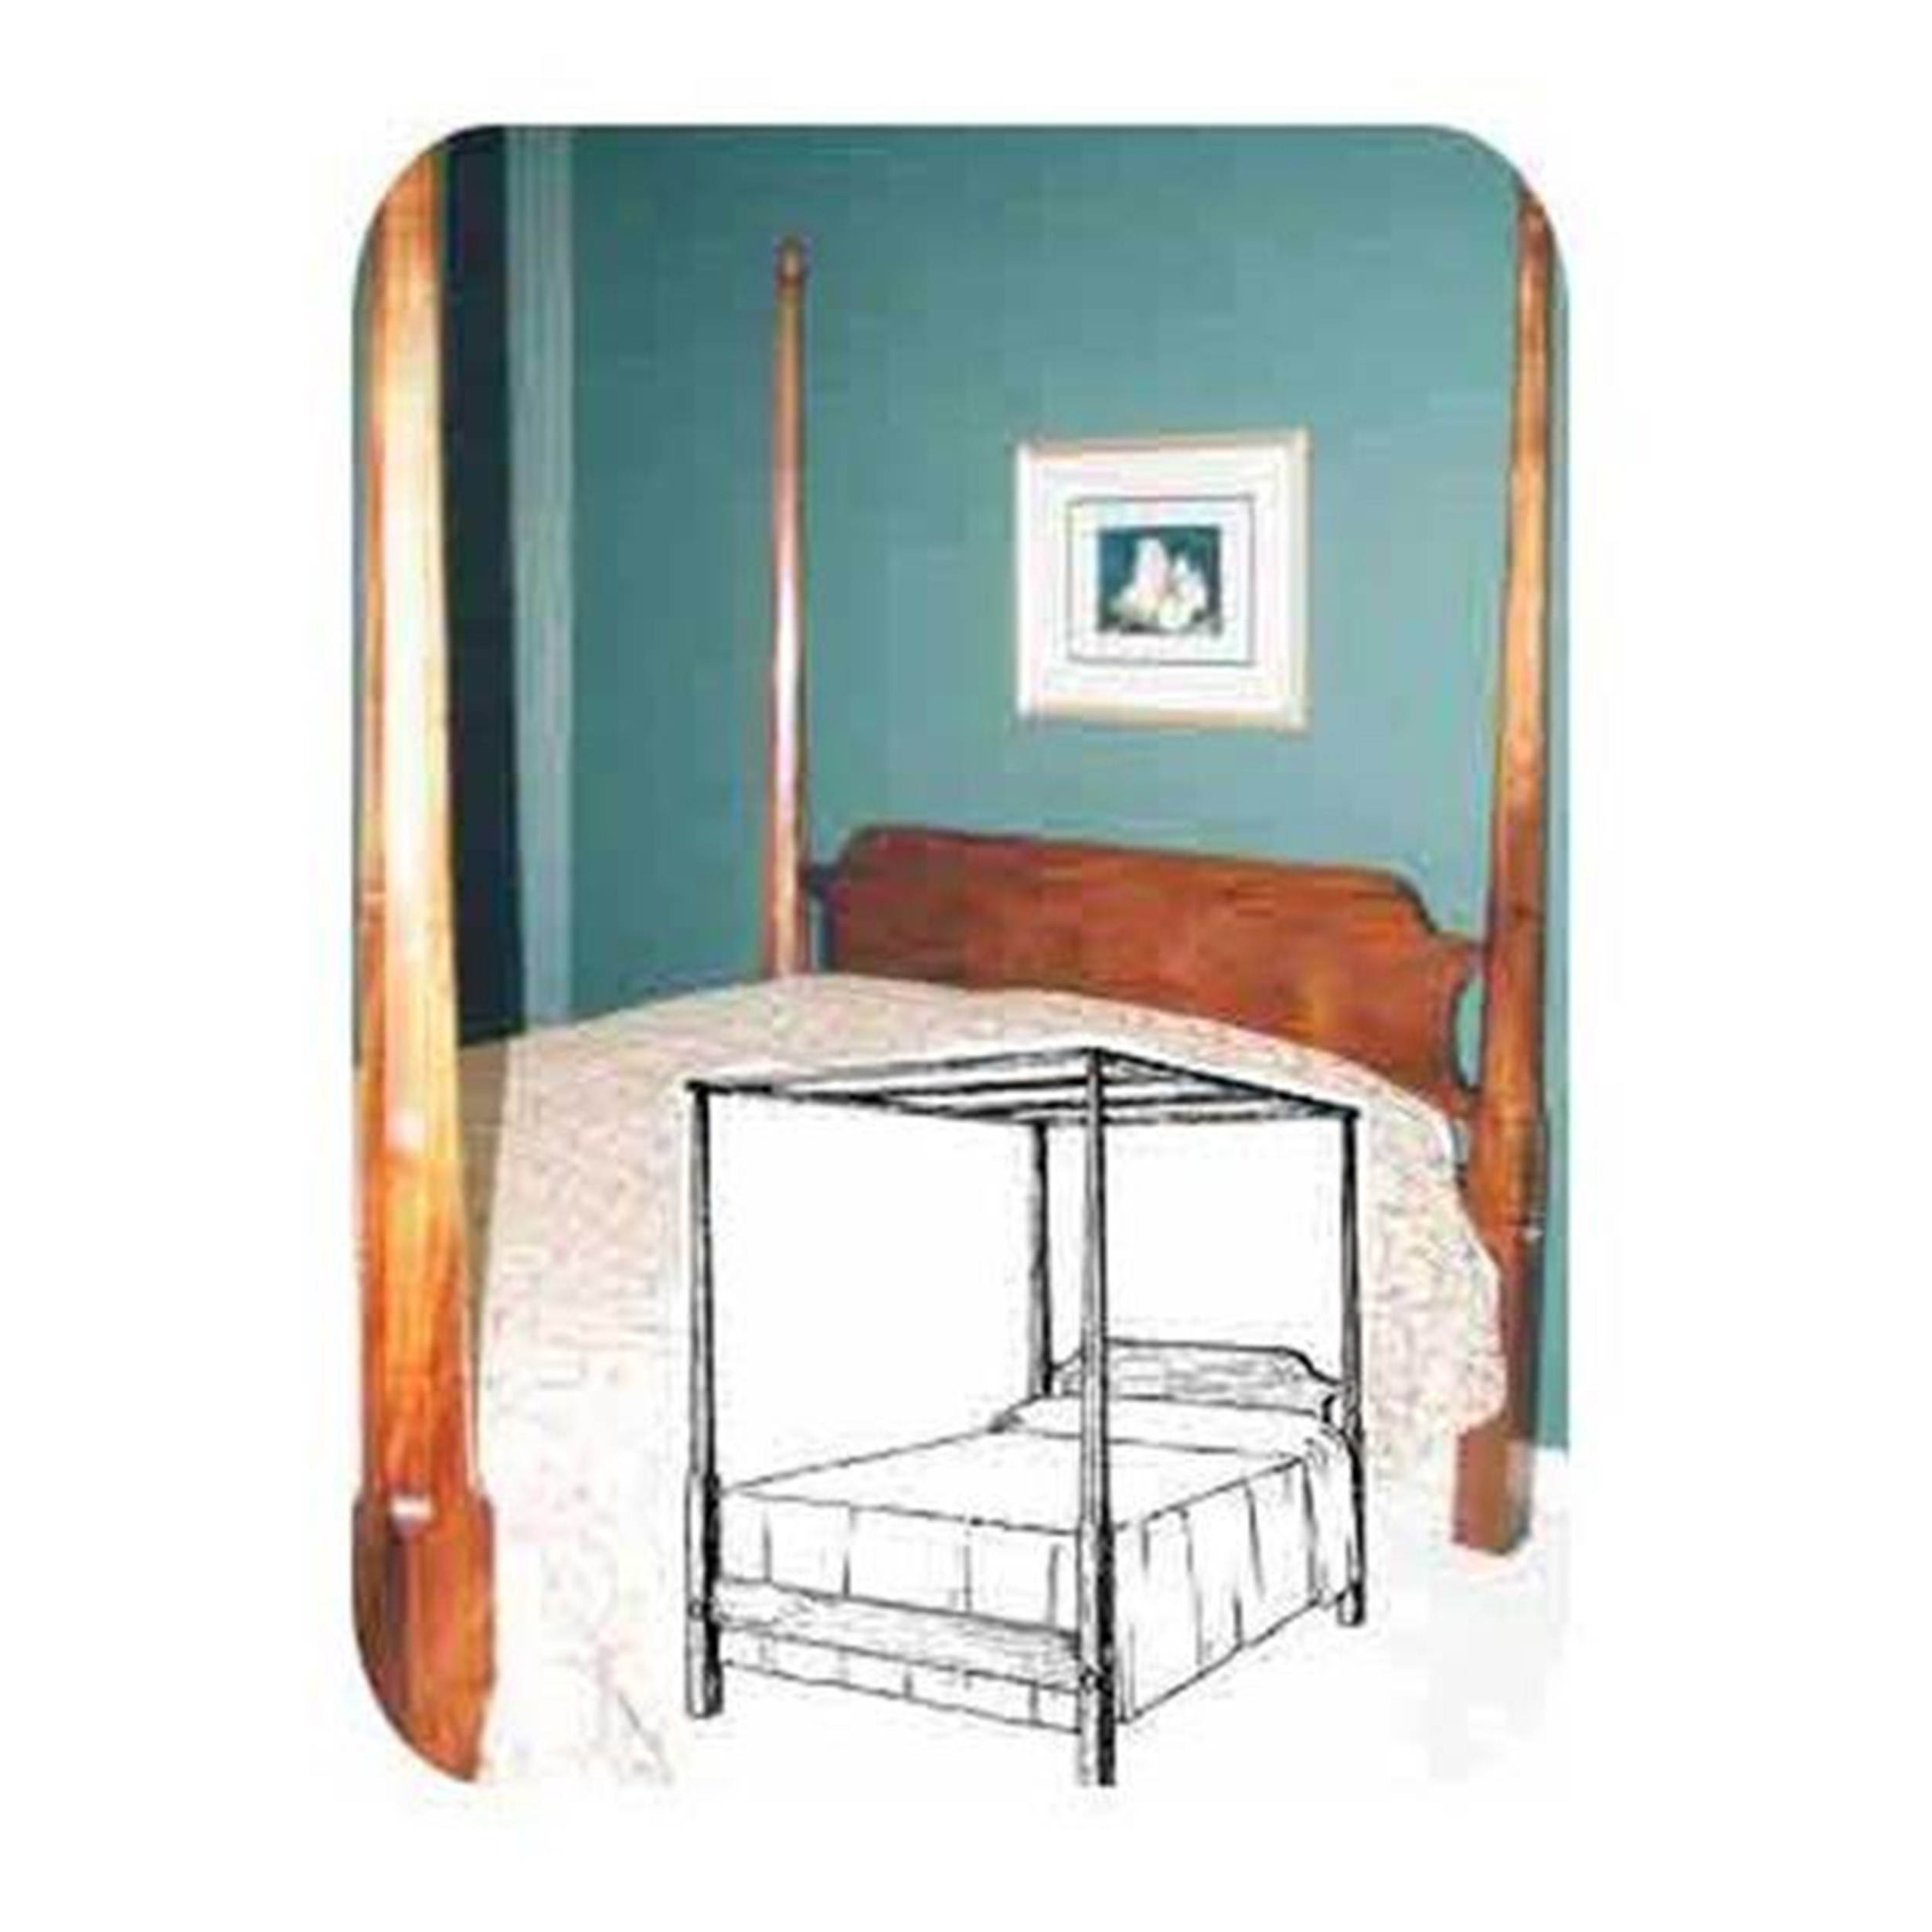 Woodworking Project Paper Plan to Build Pencil Post Canopy Bed